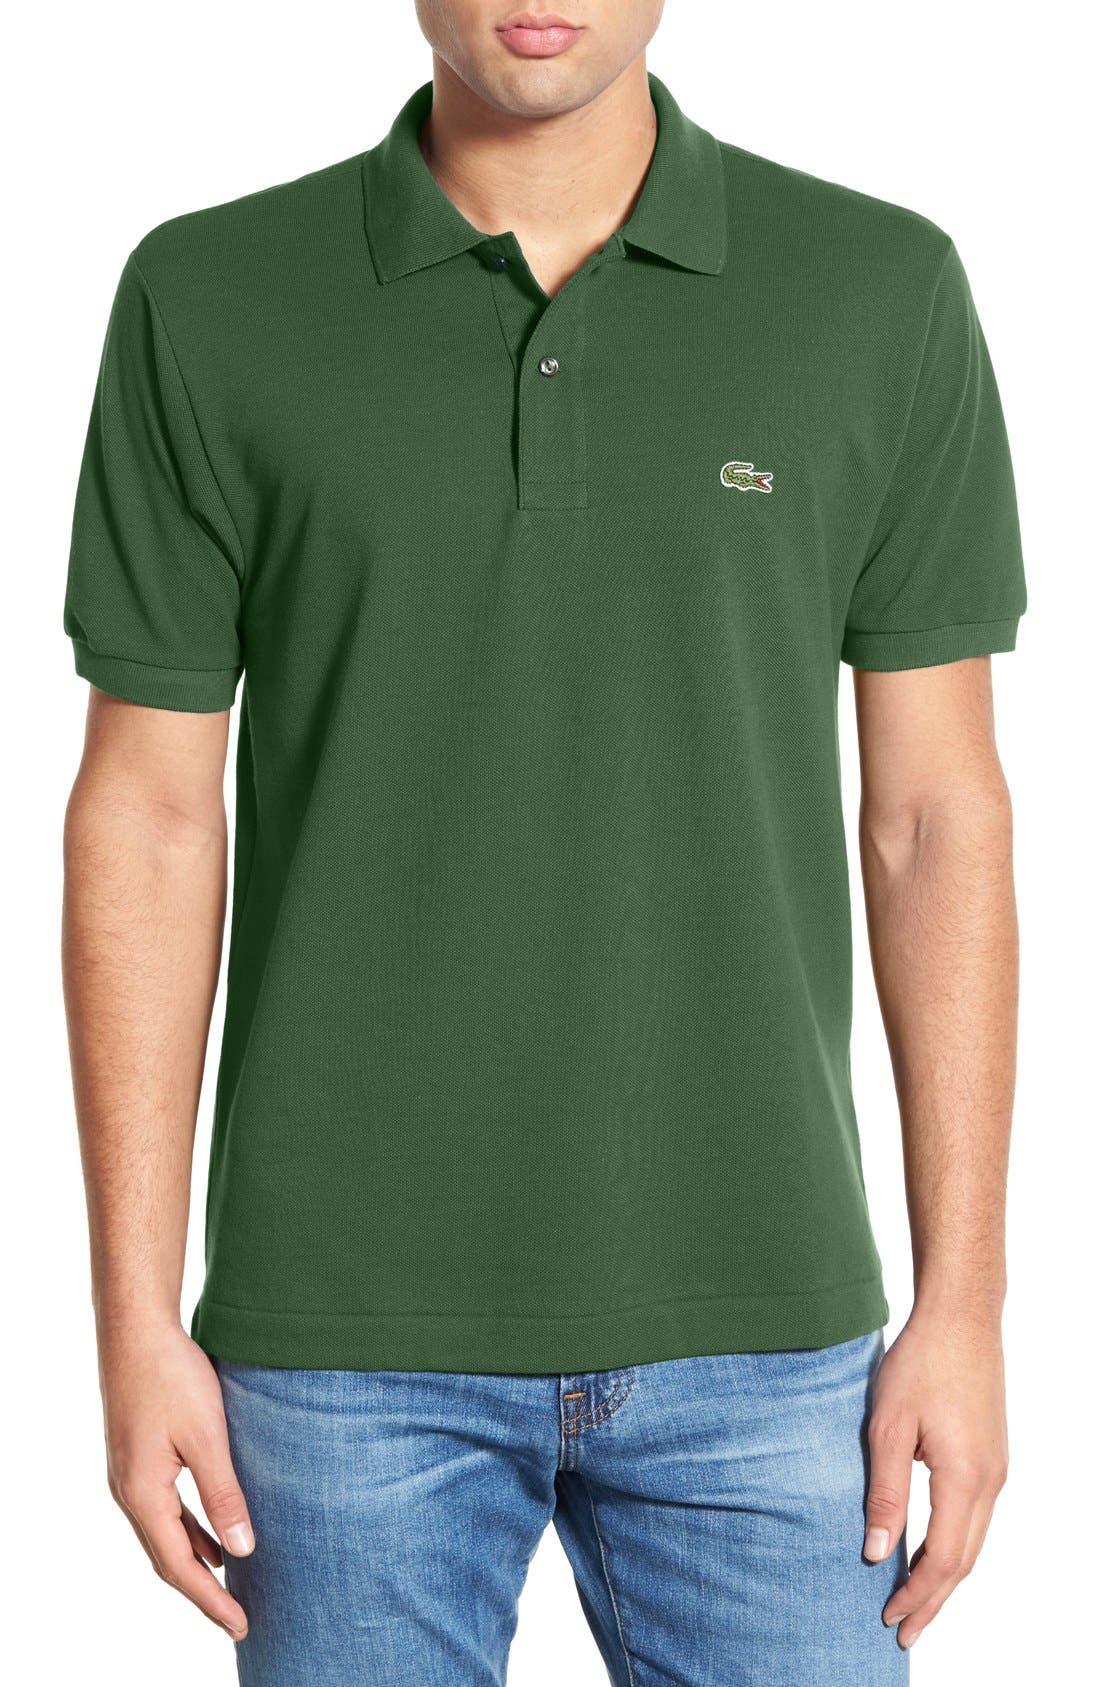 LACOSTE Short Sleeve Pique Polo Shirt - Classic Fit in Cactus Green